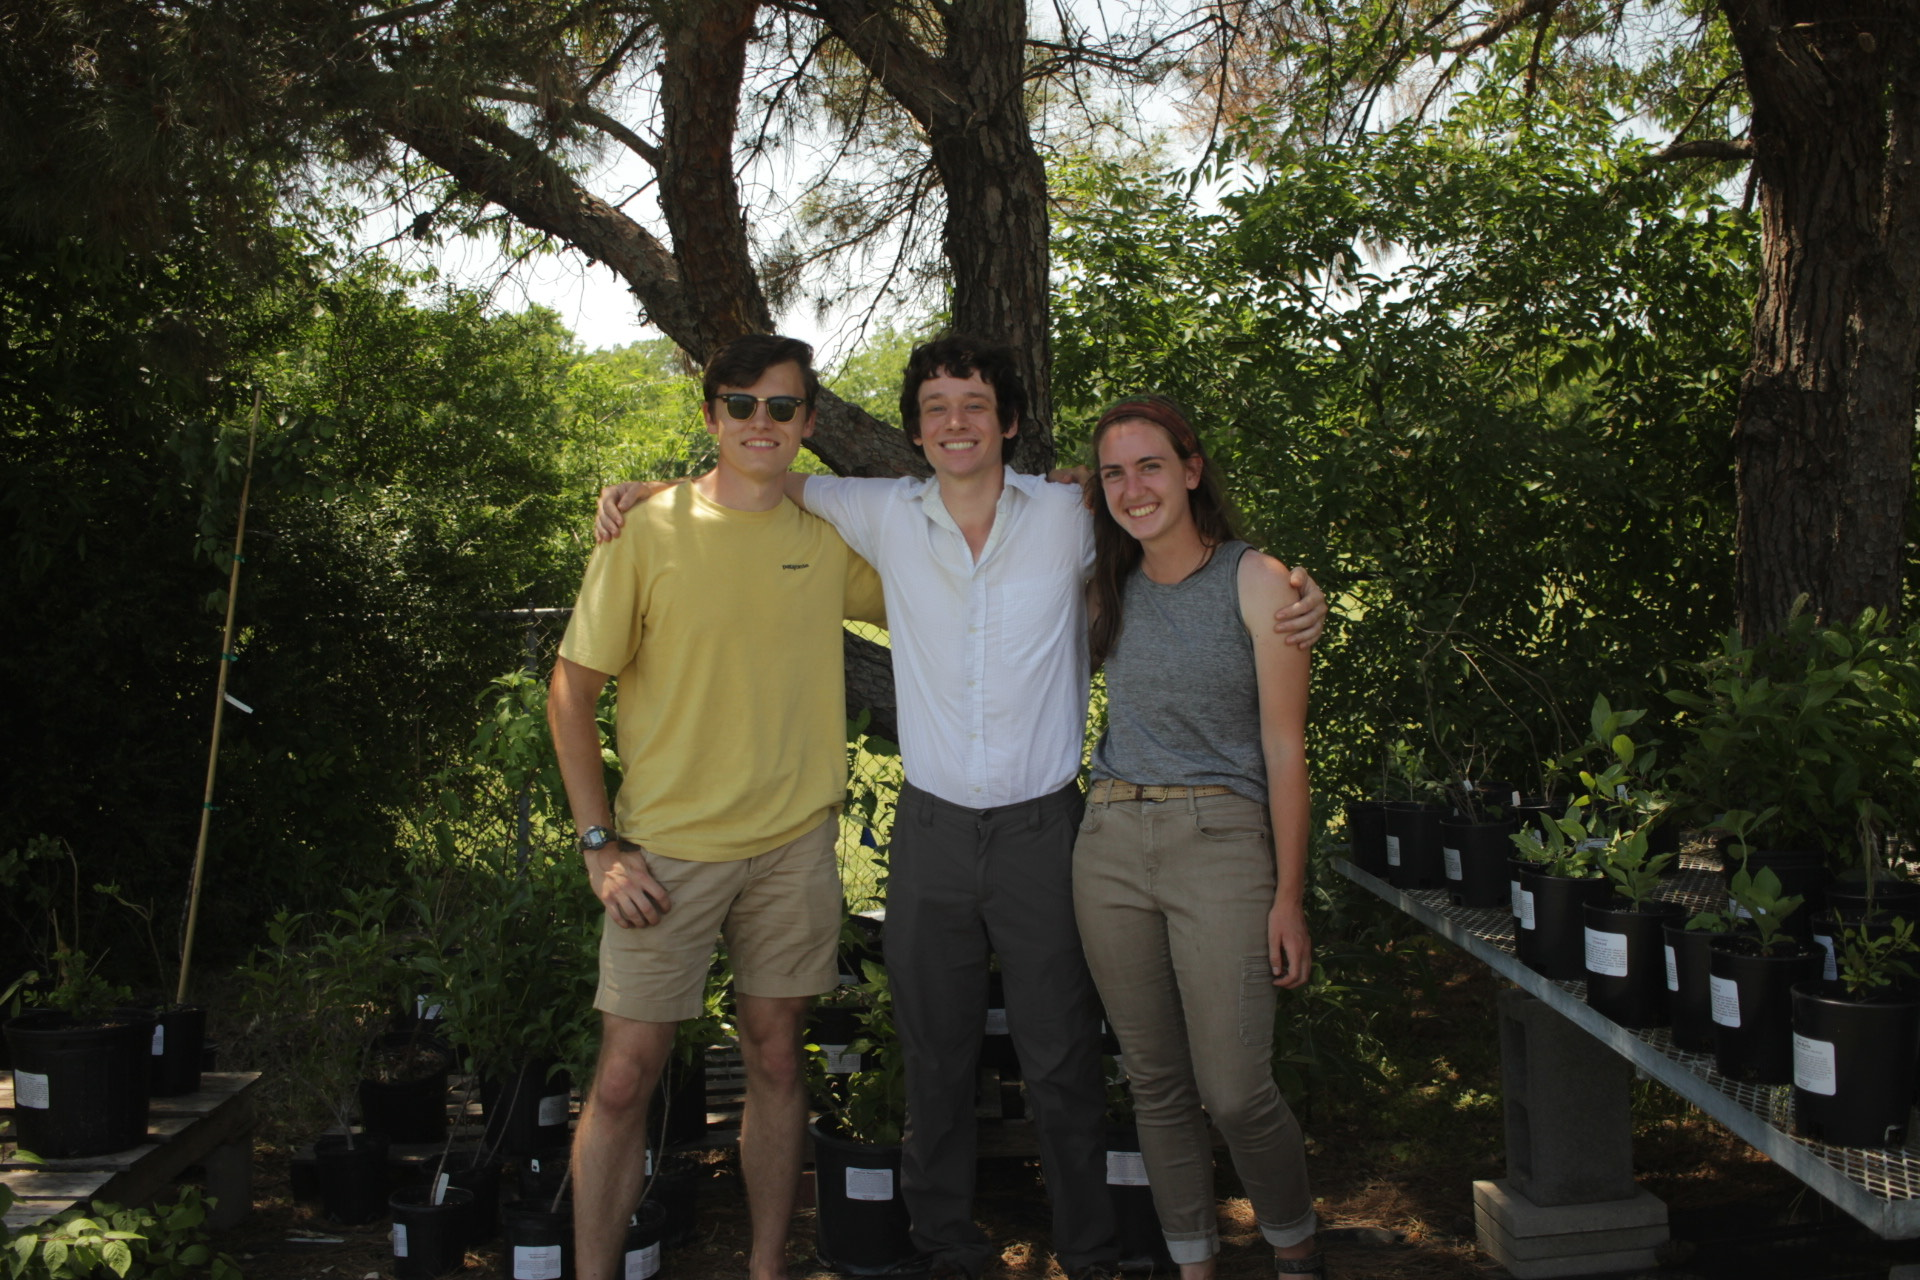 From left, Taylor Phillips ('19), Jesse Stanford ('19) and Molly Burke ('19).